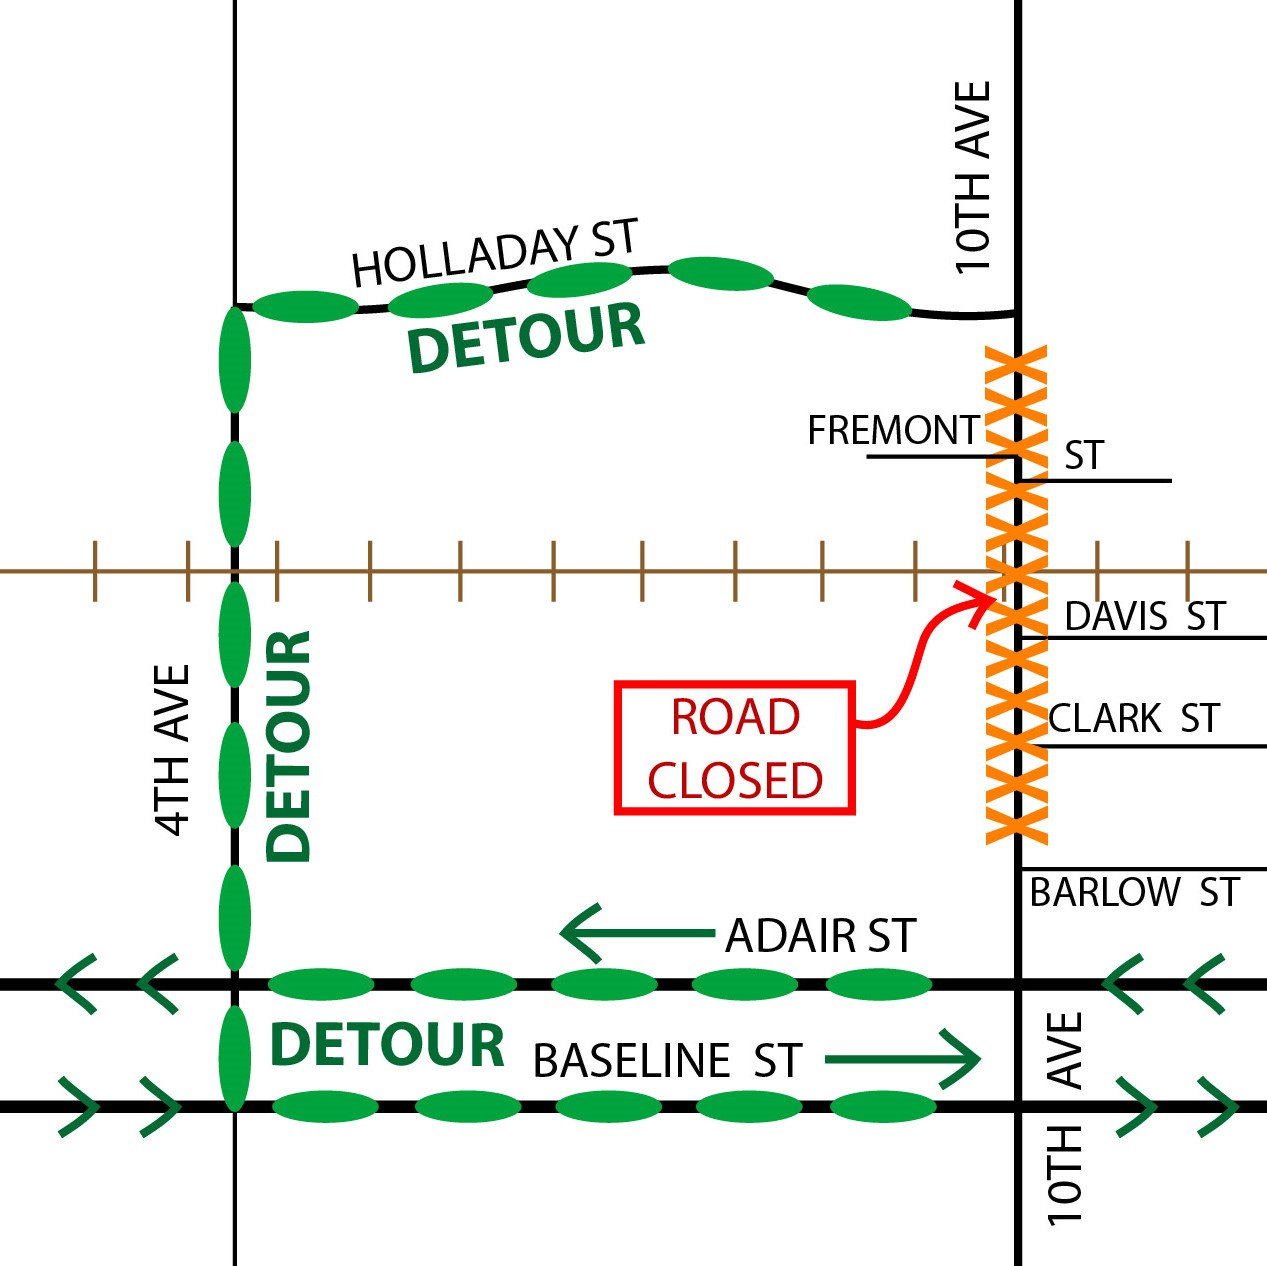 10th Avenue detour map